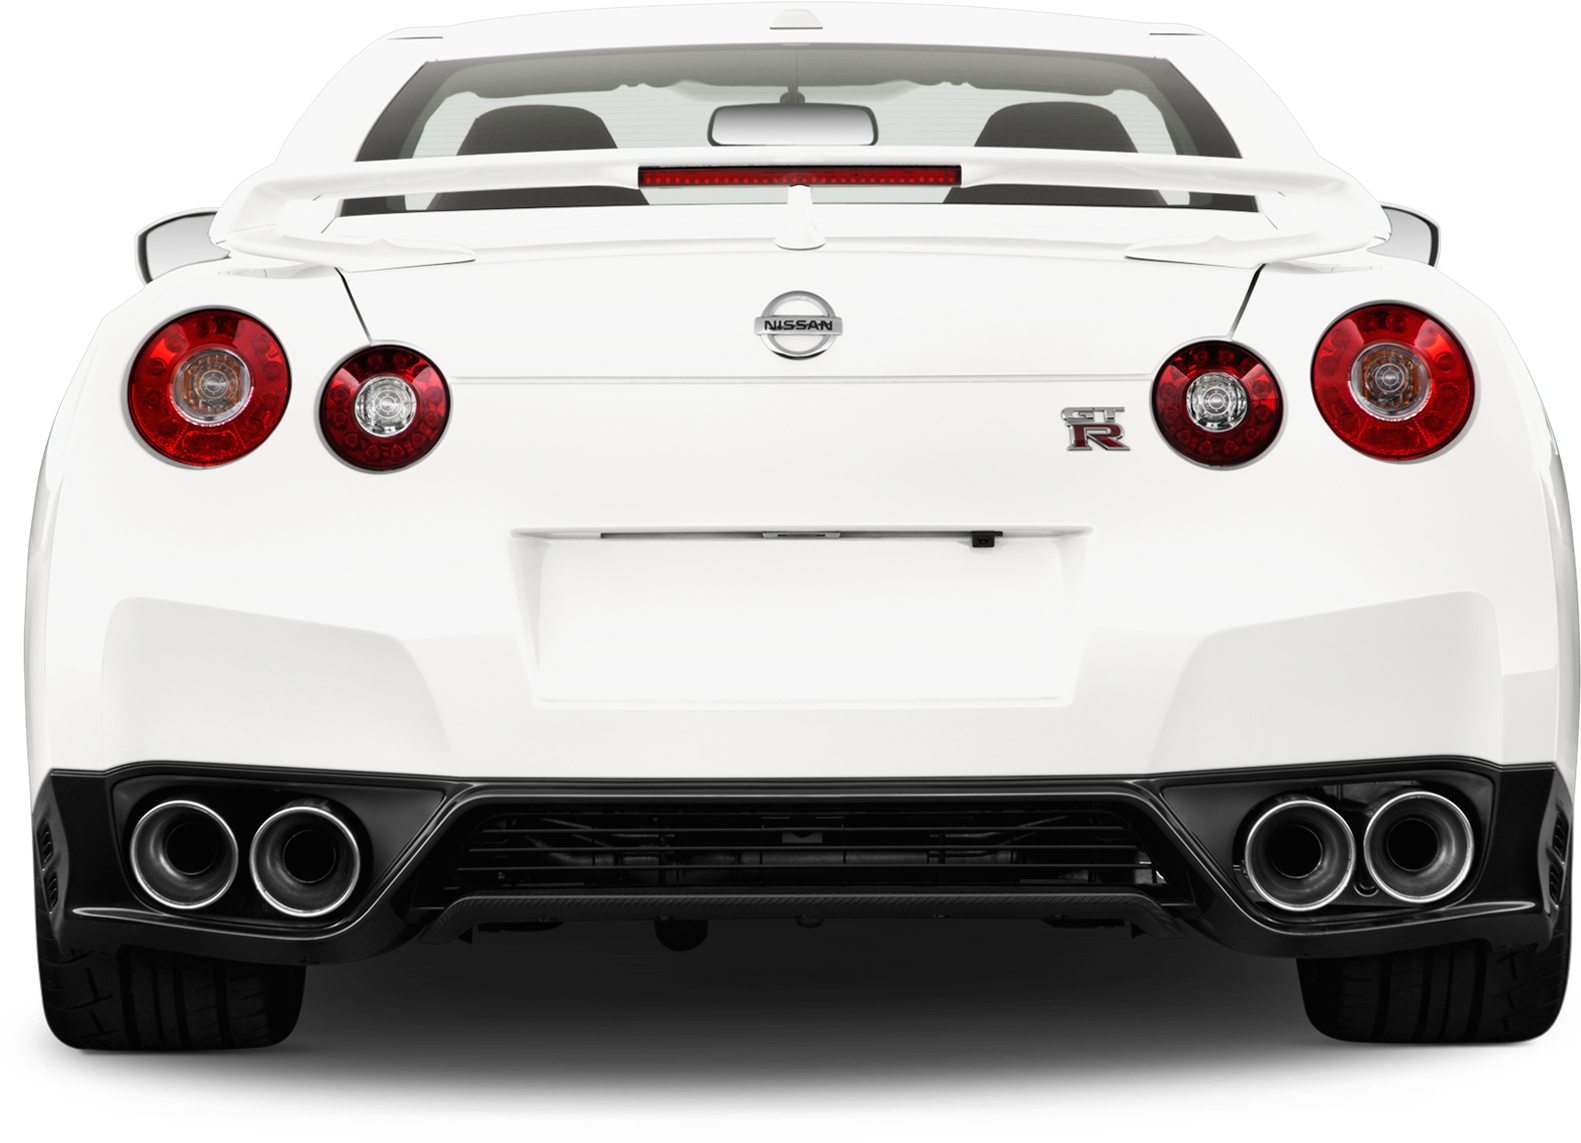 Gtr No Background >> Download Nissan Gtr Rear View Png Image With No Background Pngkey Com